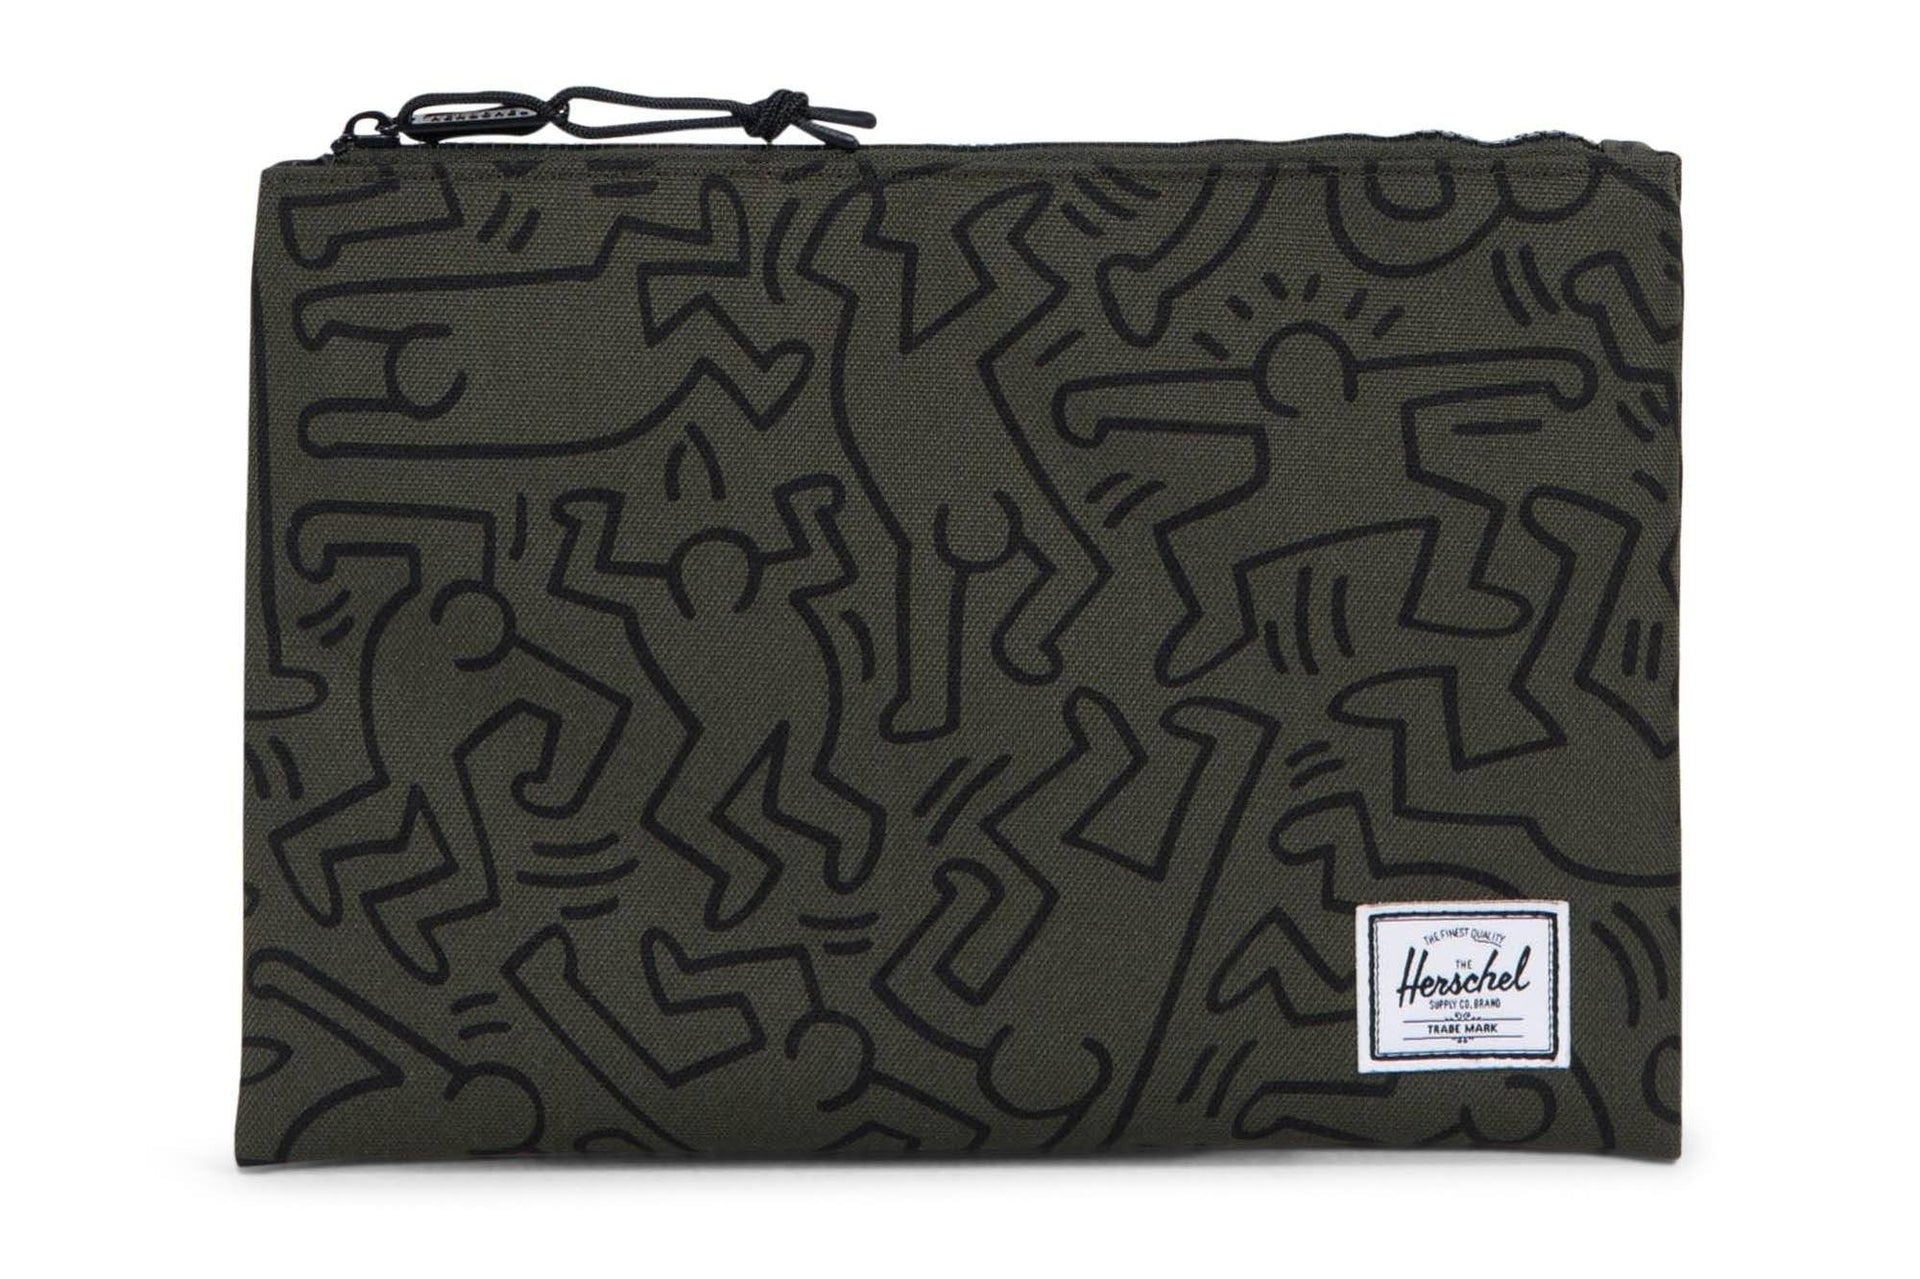 NETWORK L 600D POLY POUCH ACCESSORIES HERSCHEL FOREST NIGHT KEITH HARING L